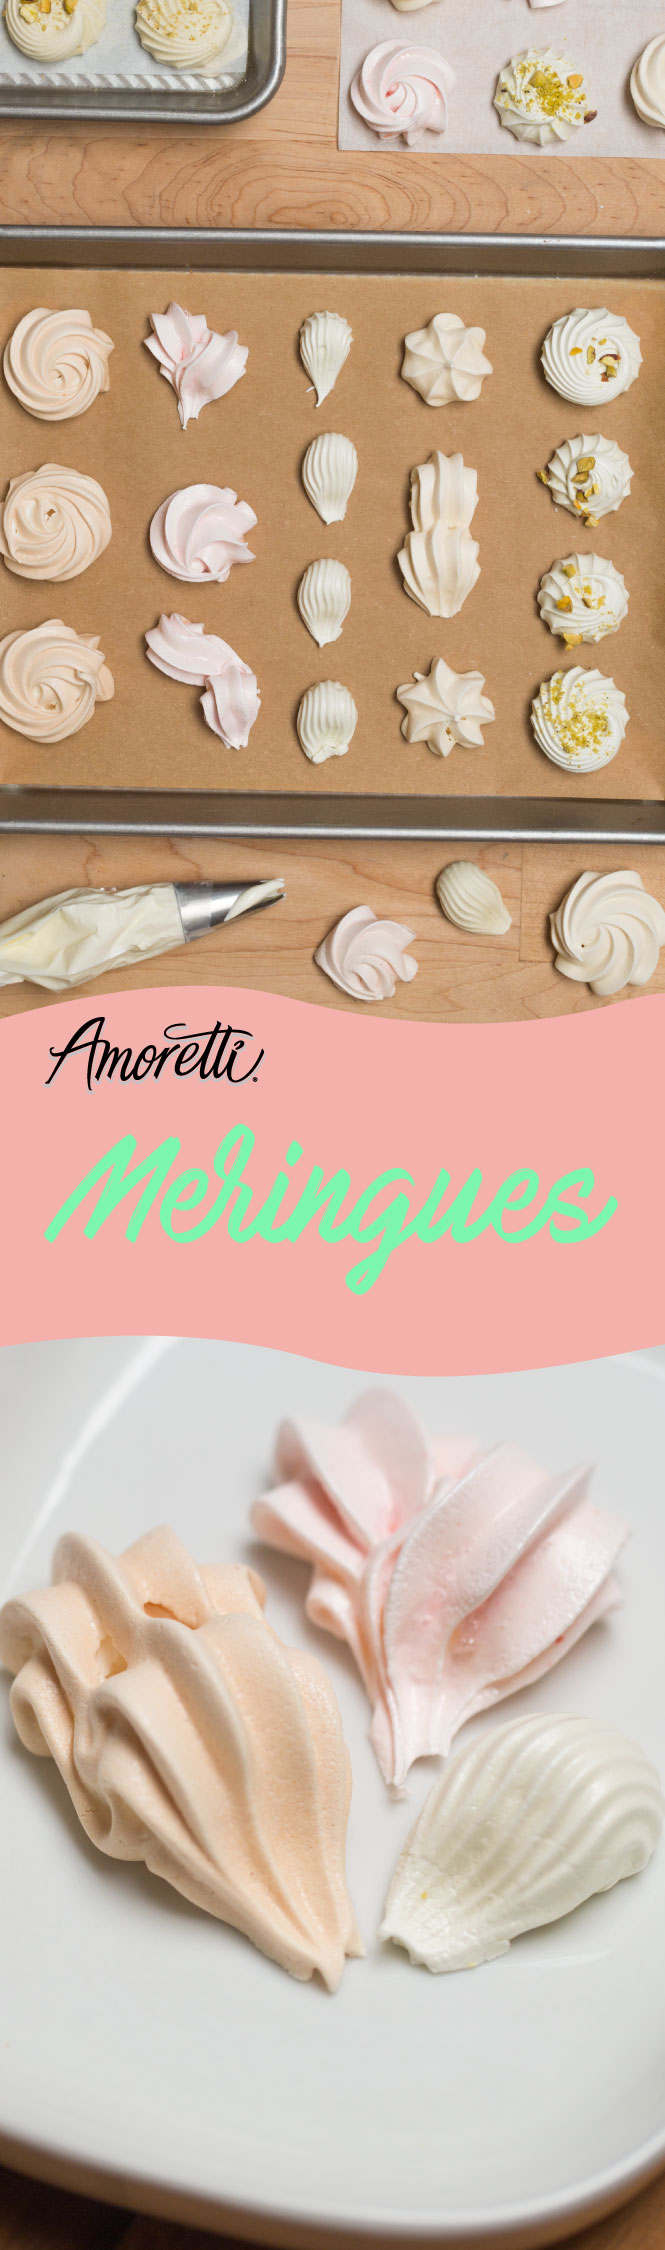 Have fun and get creative designing meringues with this simple recipe!